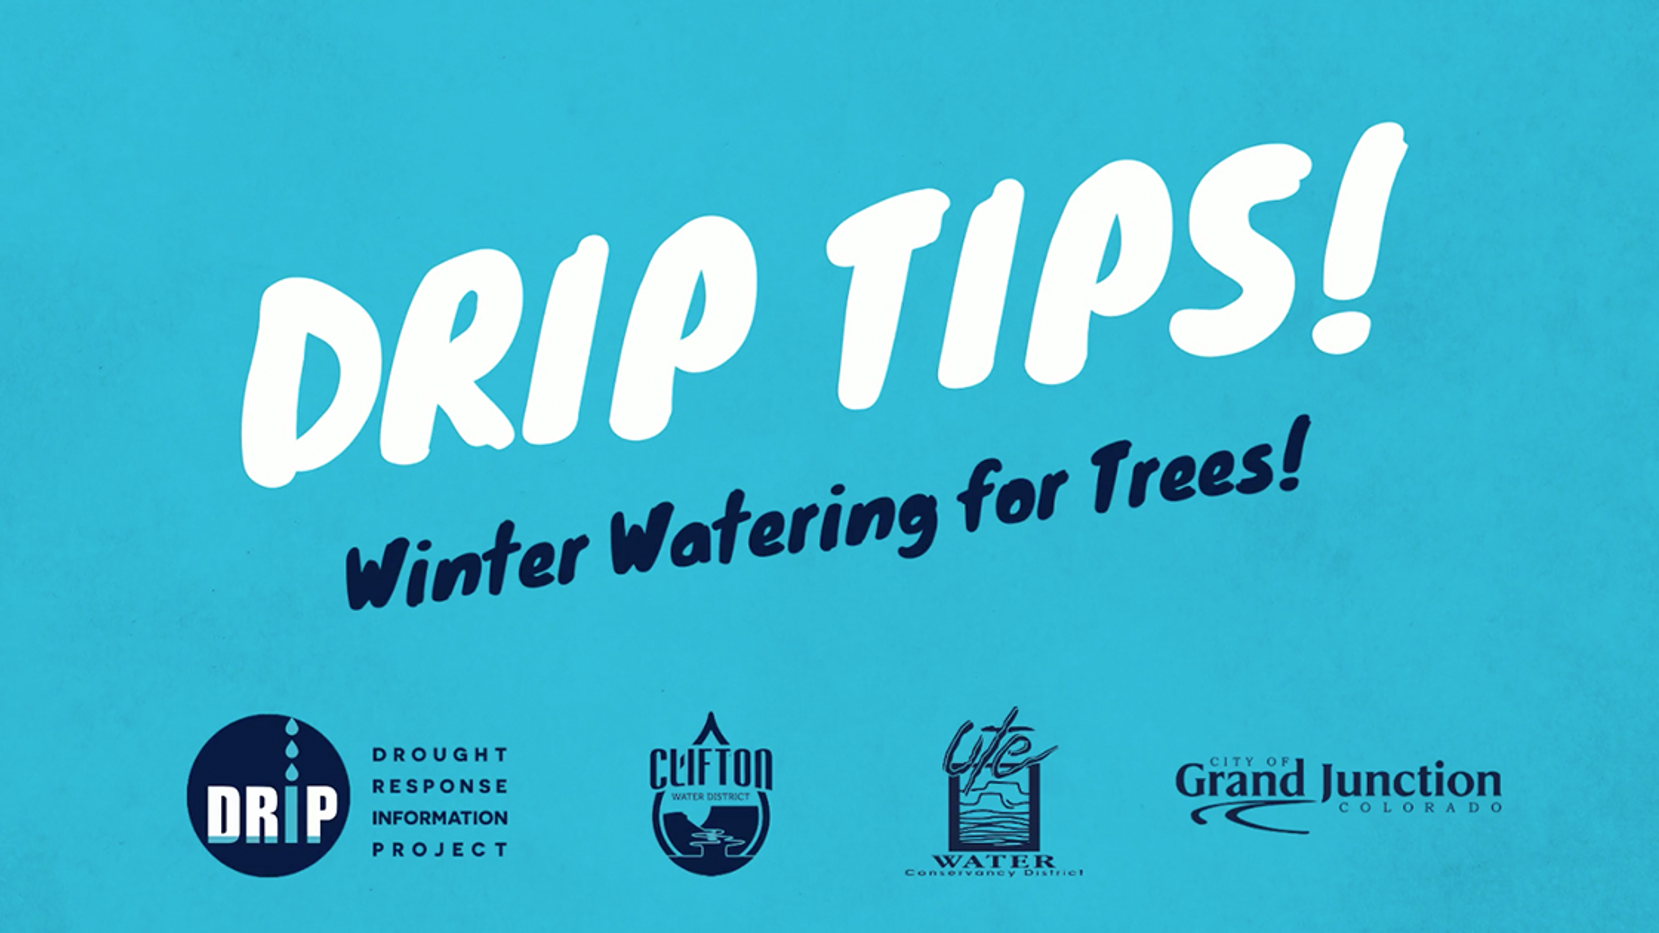 1208-FB-DRIP-Winter Watering For Trees.m